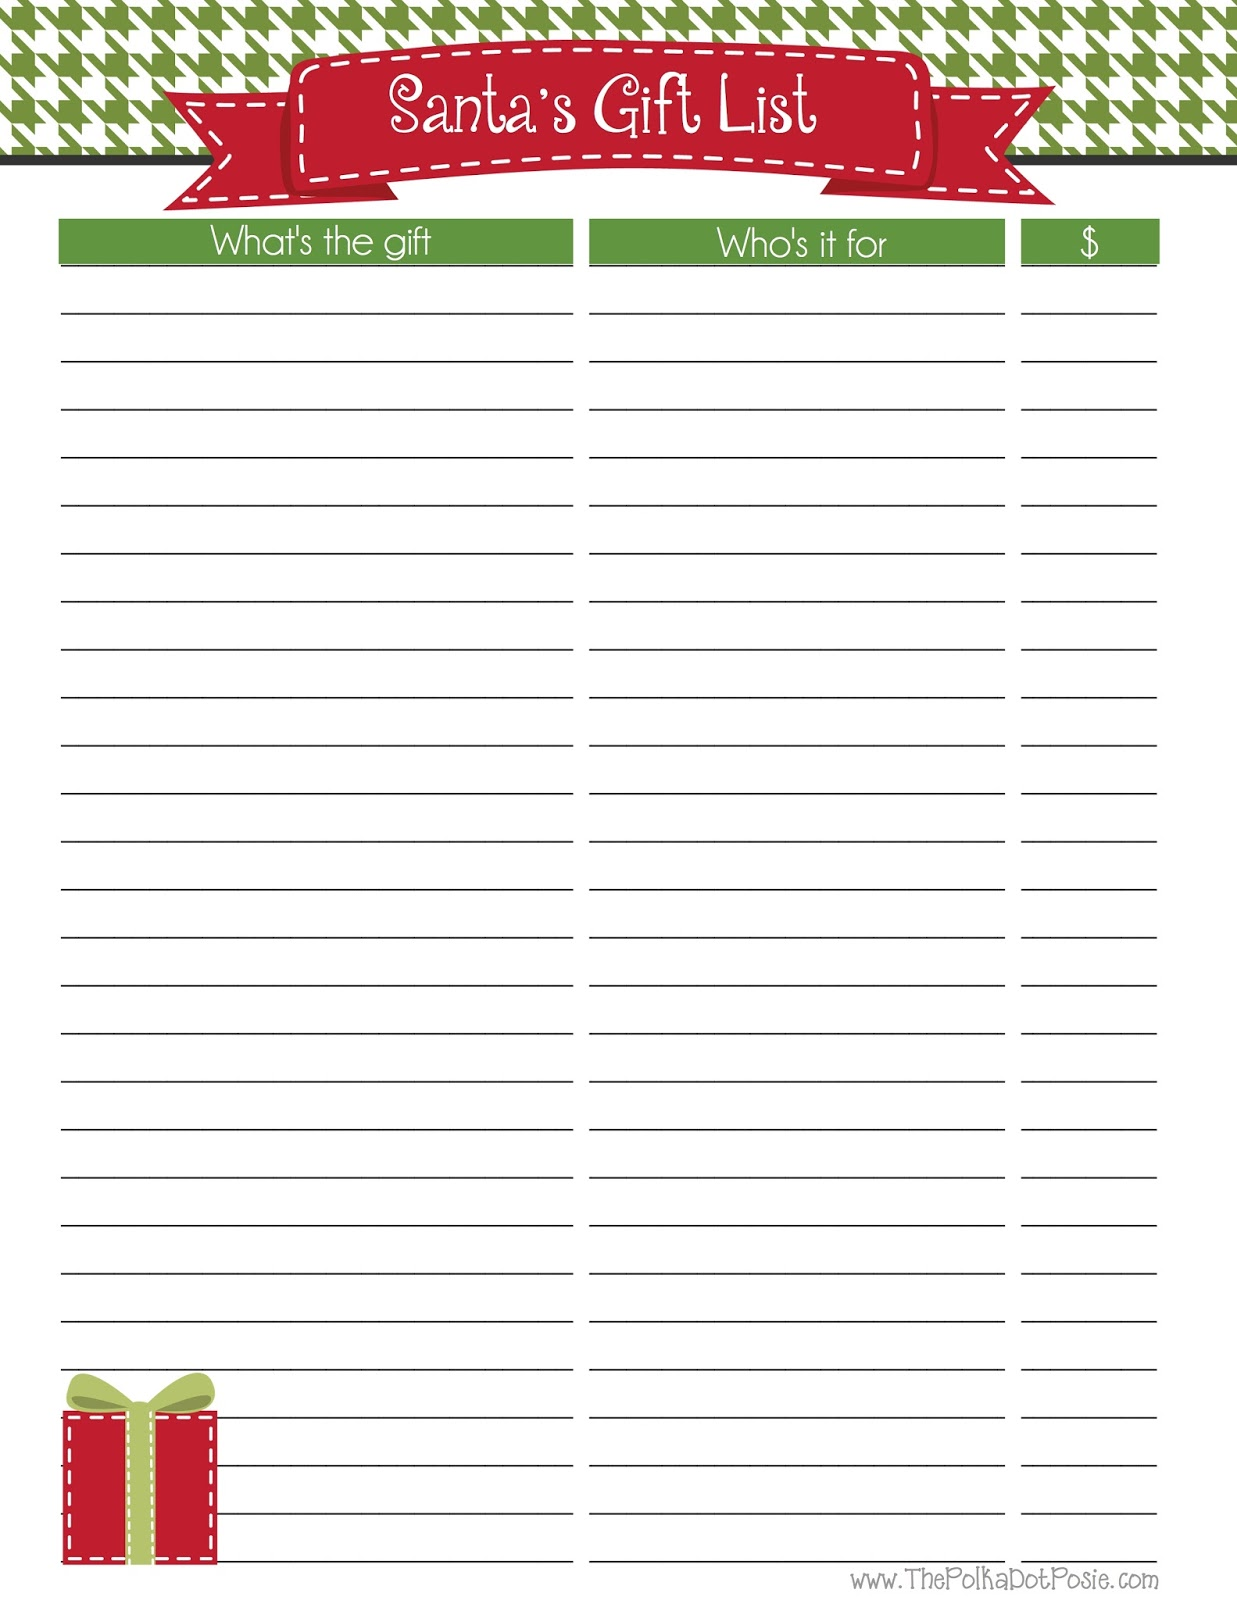 The Polka Dot Posie: Introducing Our NEW Merry Christmas Planner!  Christmas Card List Template